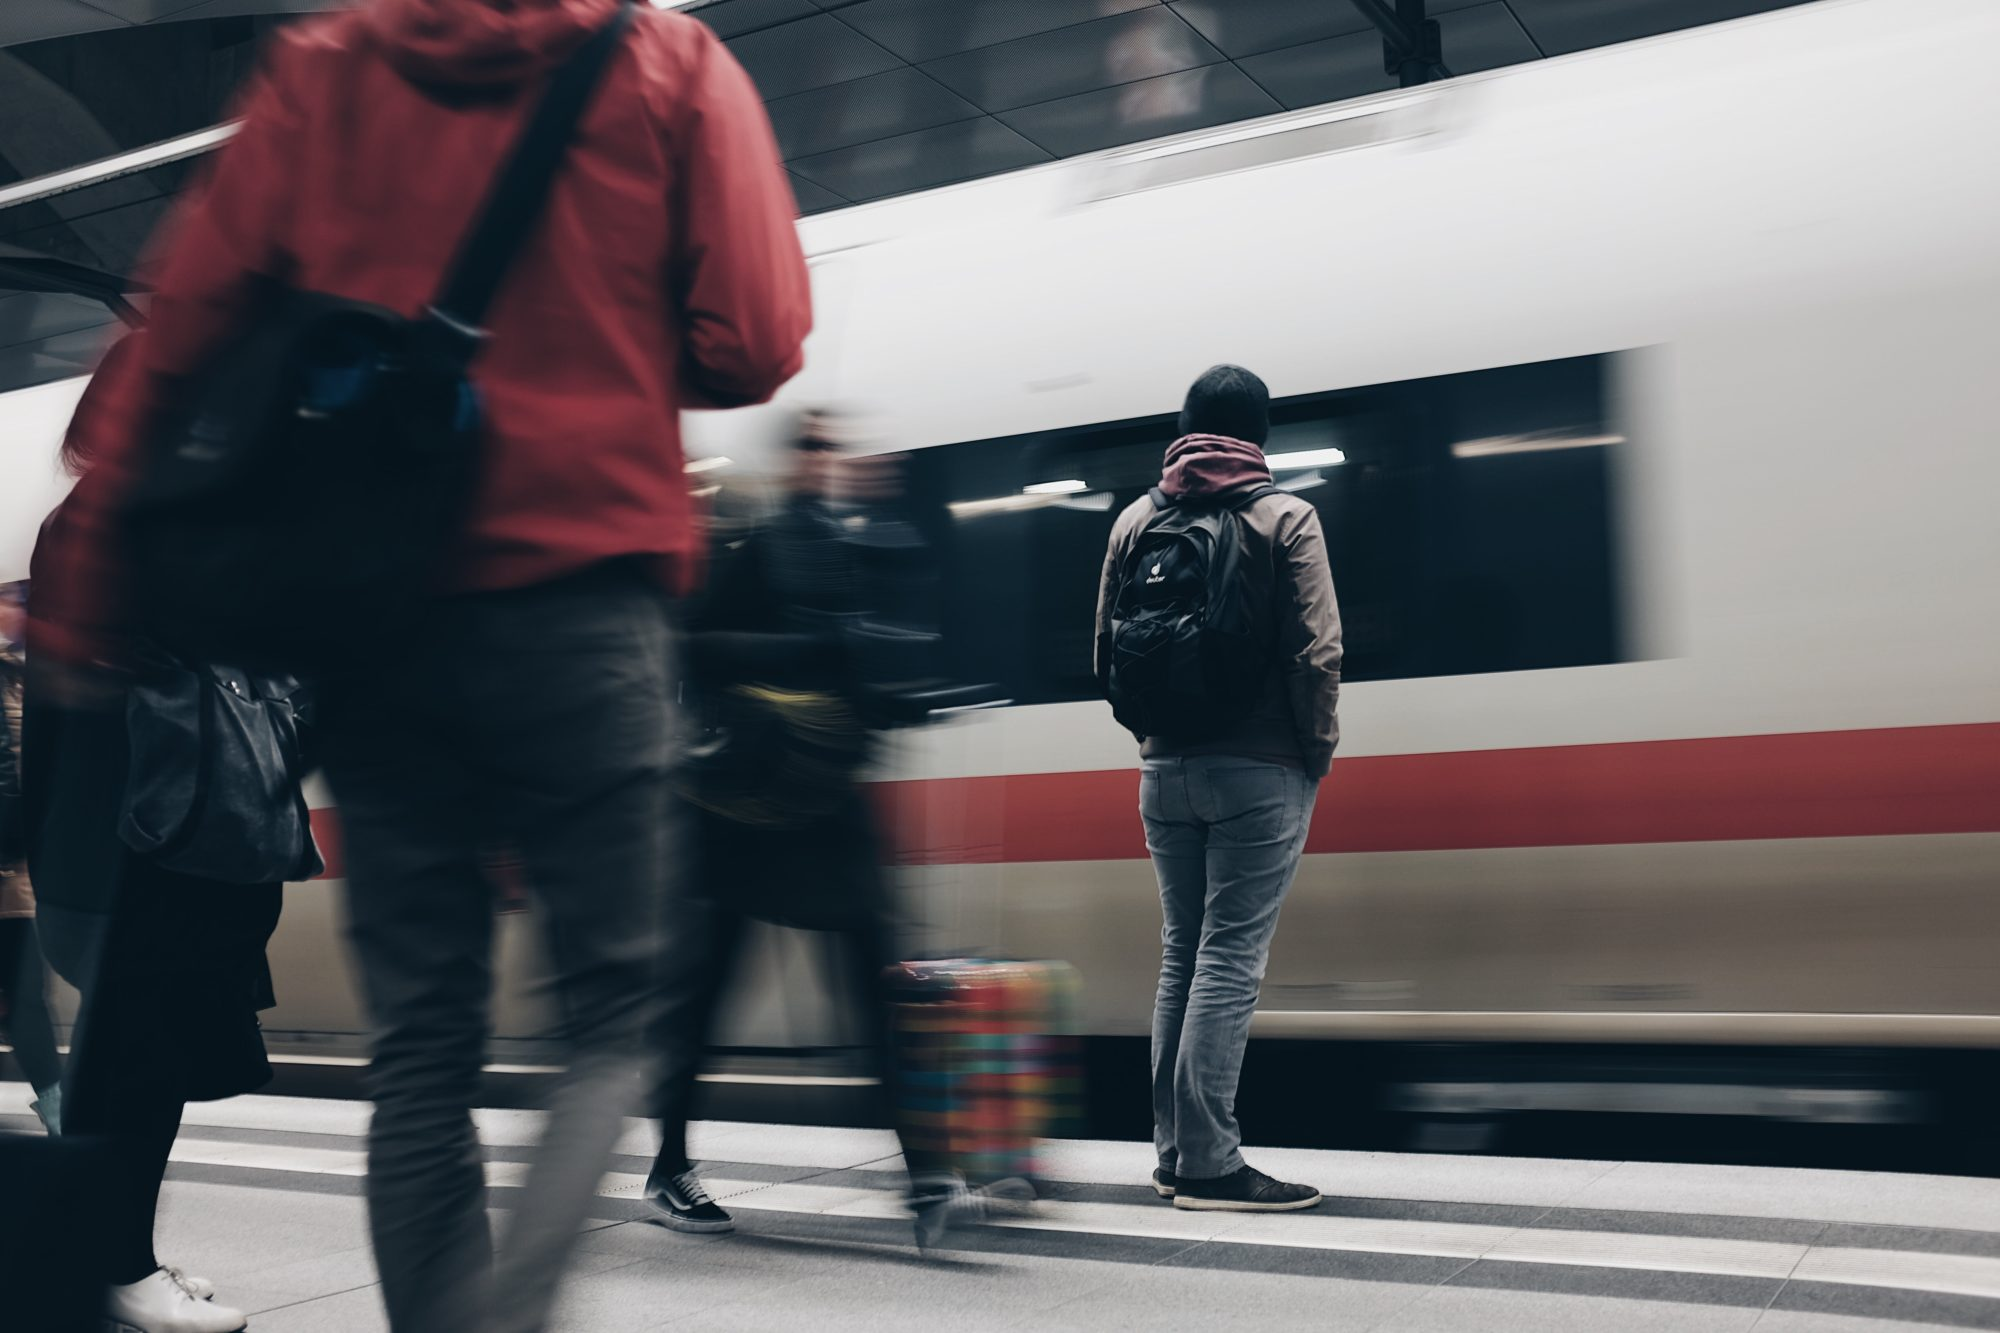 People on the move on a platform with a train entering